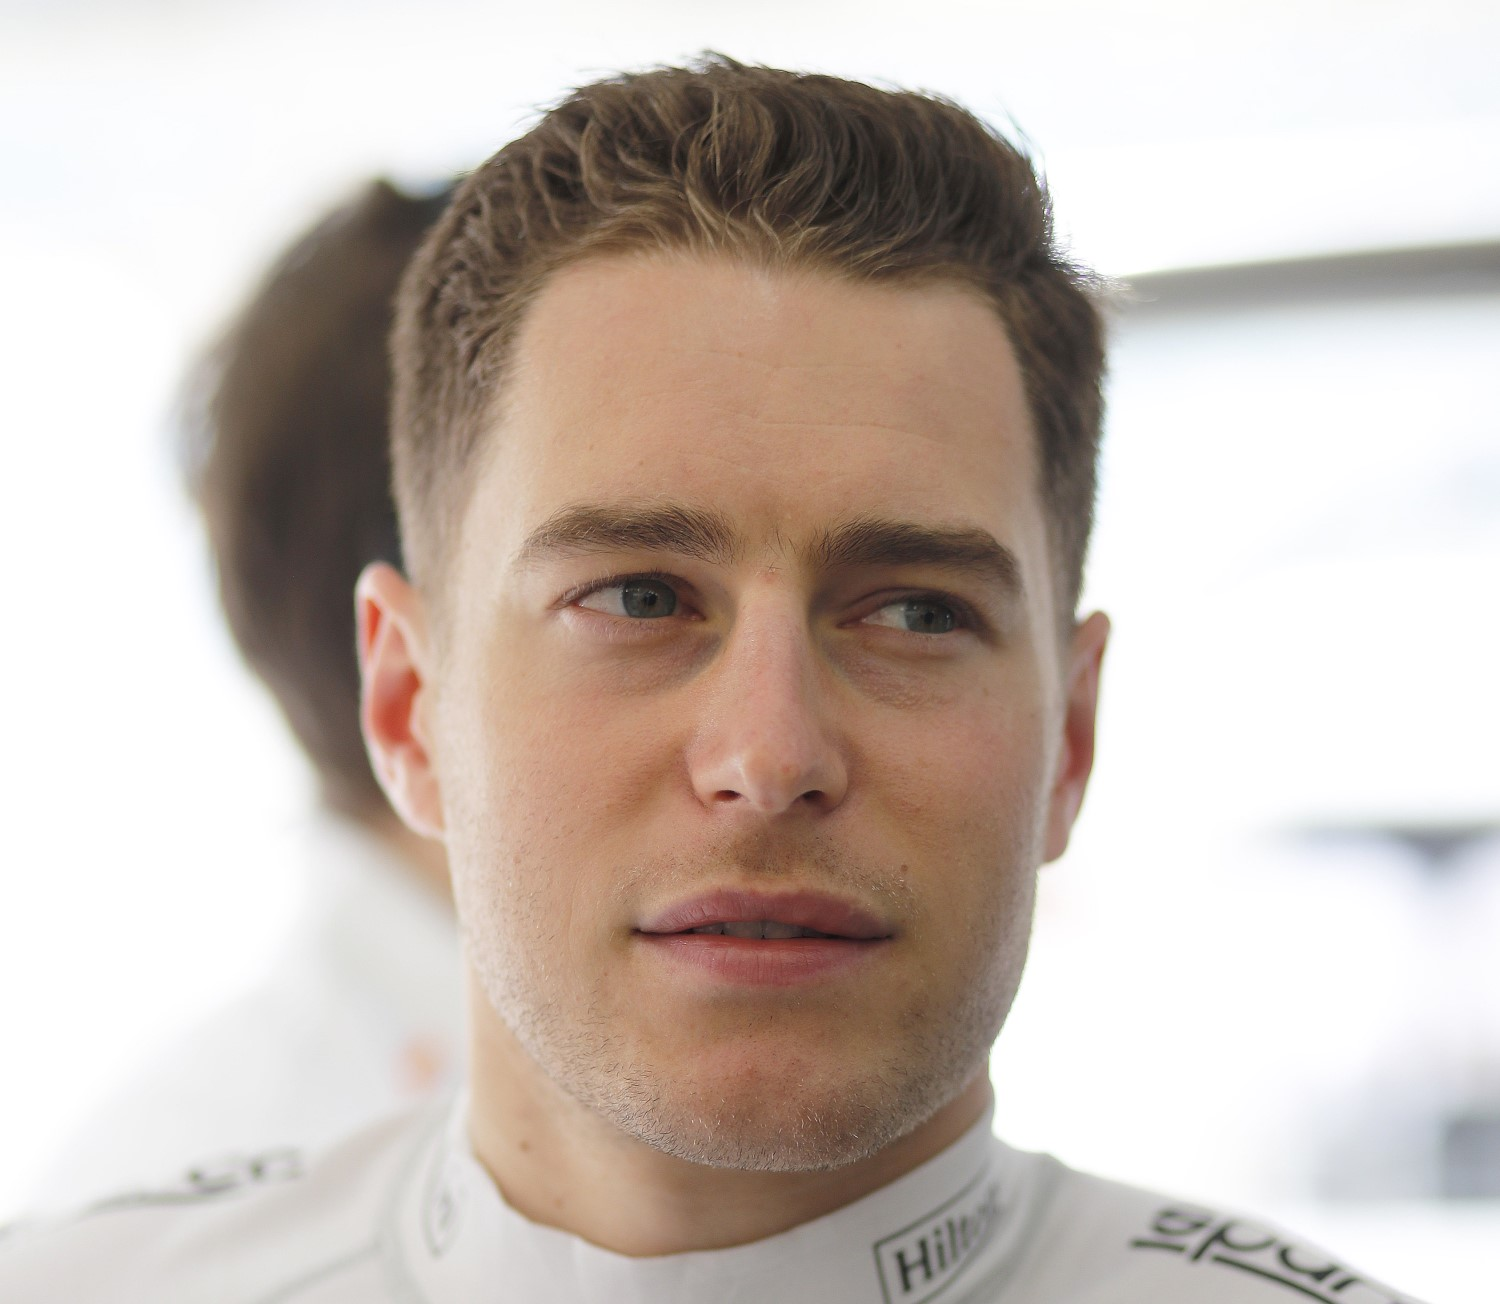 Vandoorne will stay to keep Alonso's seat warm in case the McLaren comes good